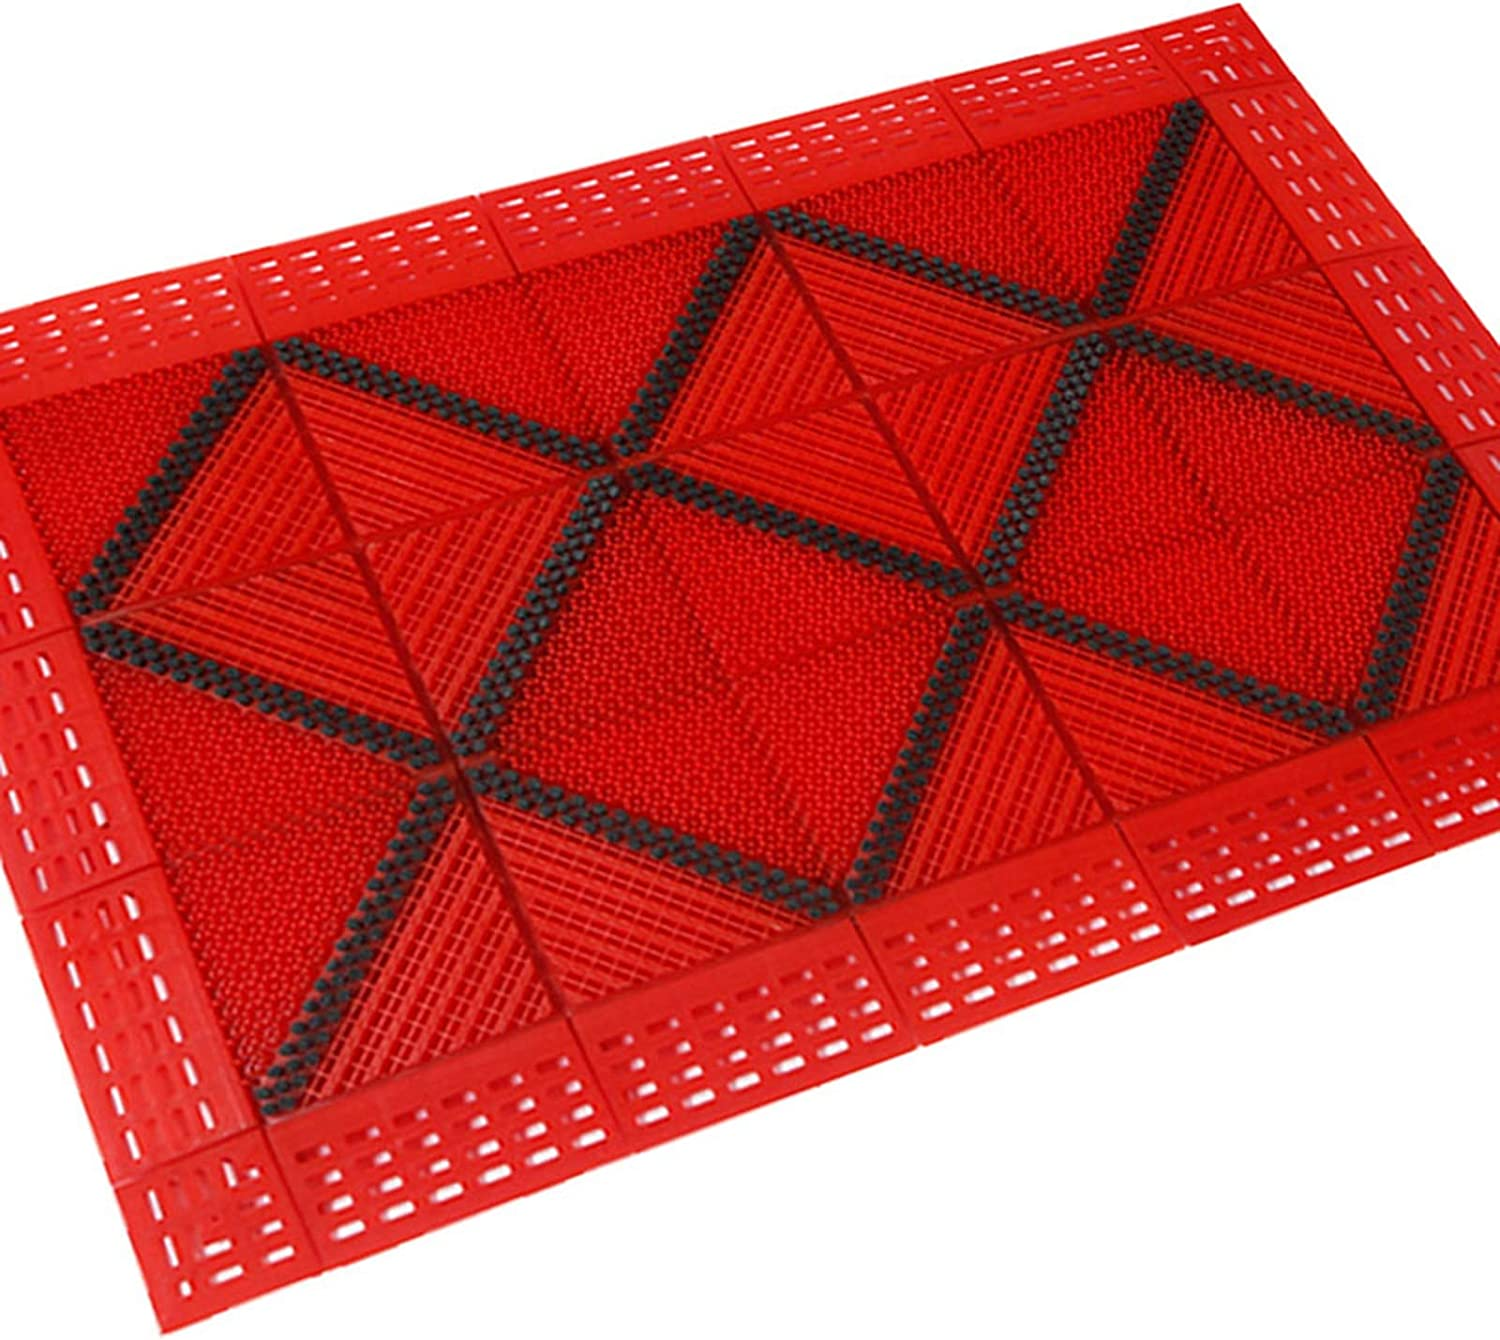 Commercial Manufacturer regenerated product Phoenix Mall Doormats for Hotels Banks Extra Large Garage Schools